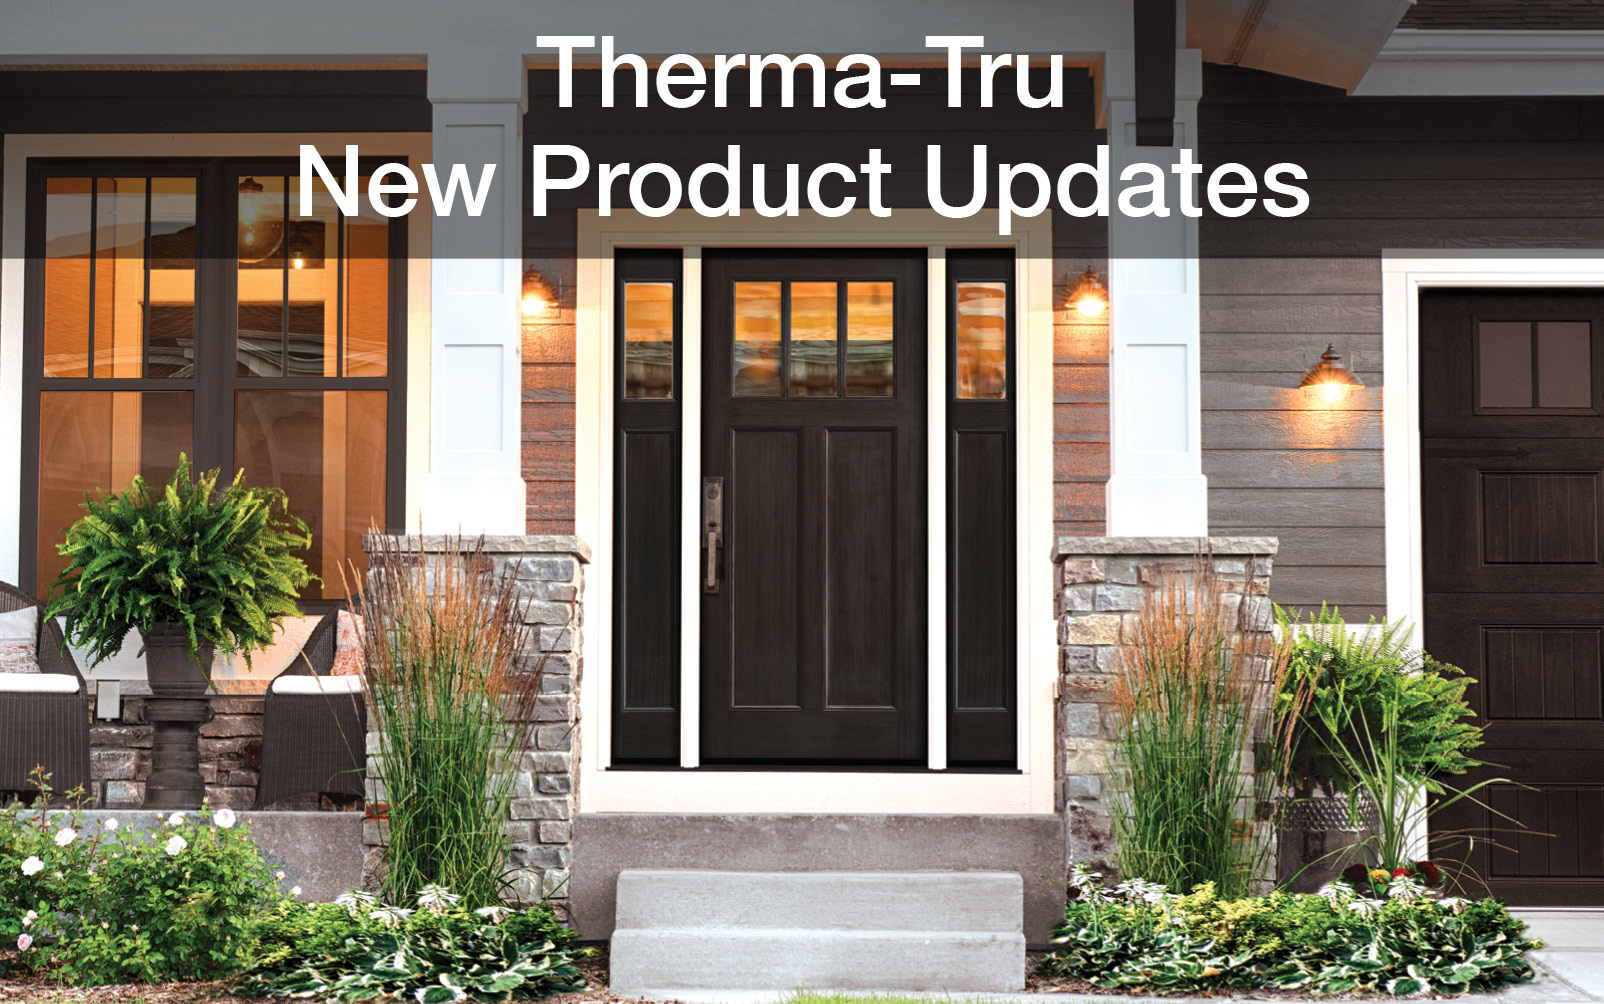 Therma-Tru New Product Updates